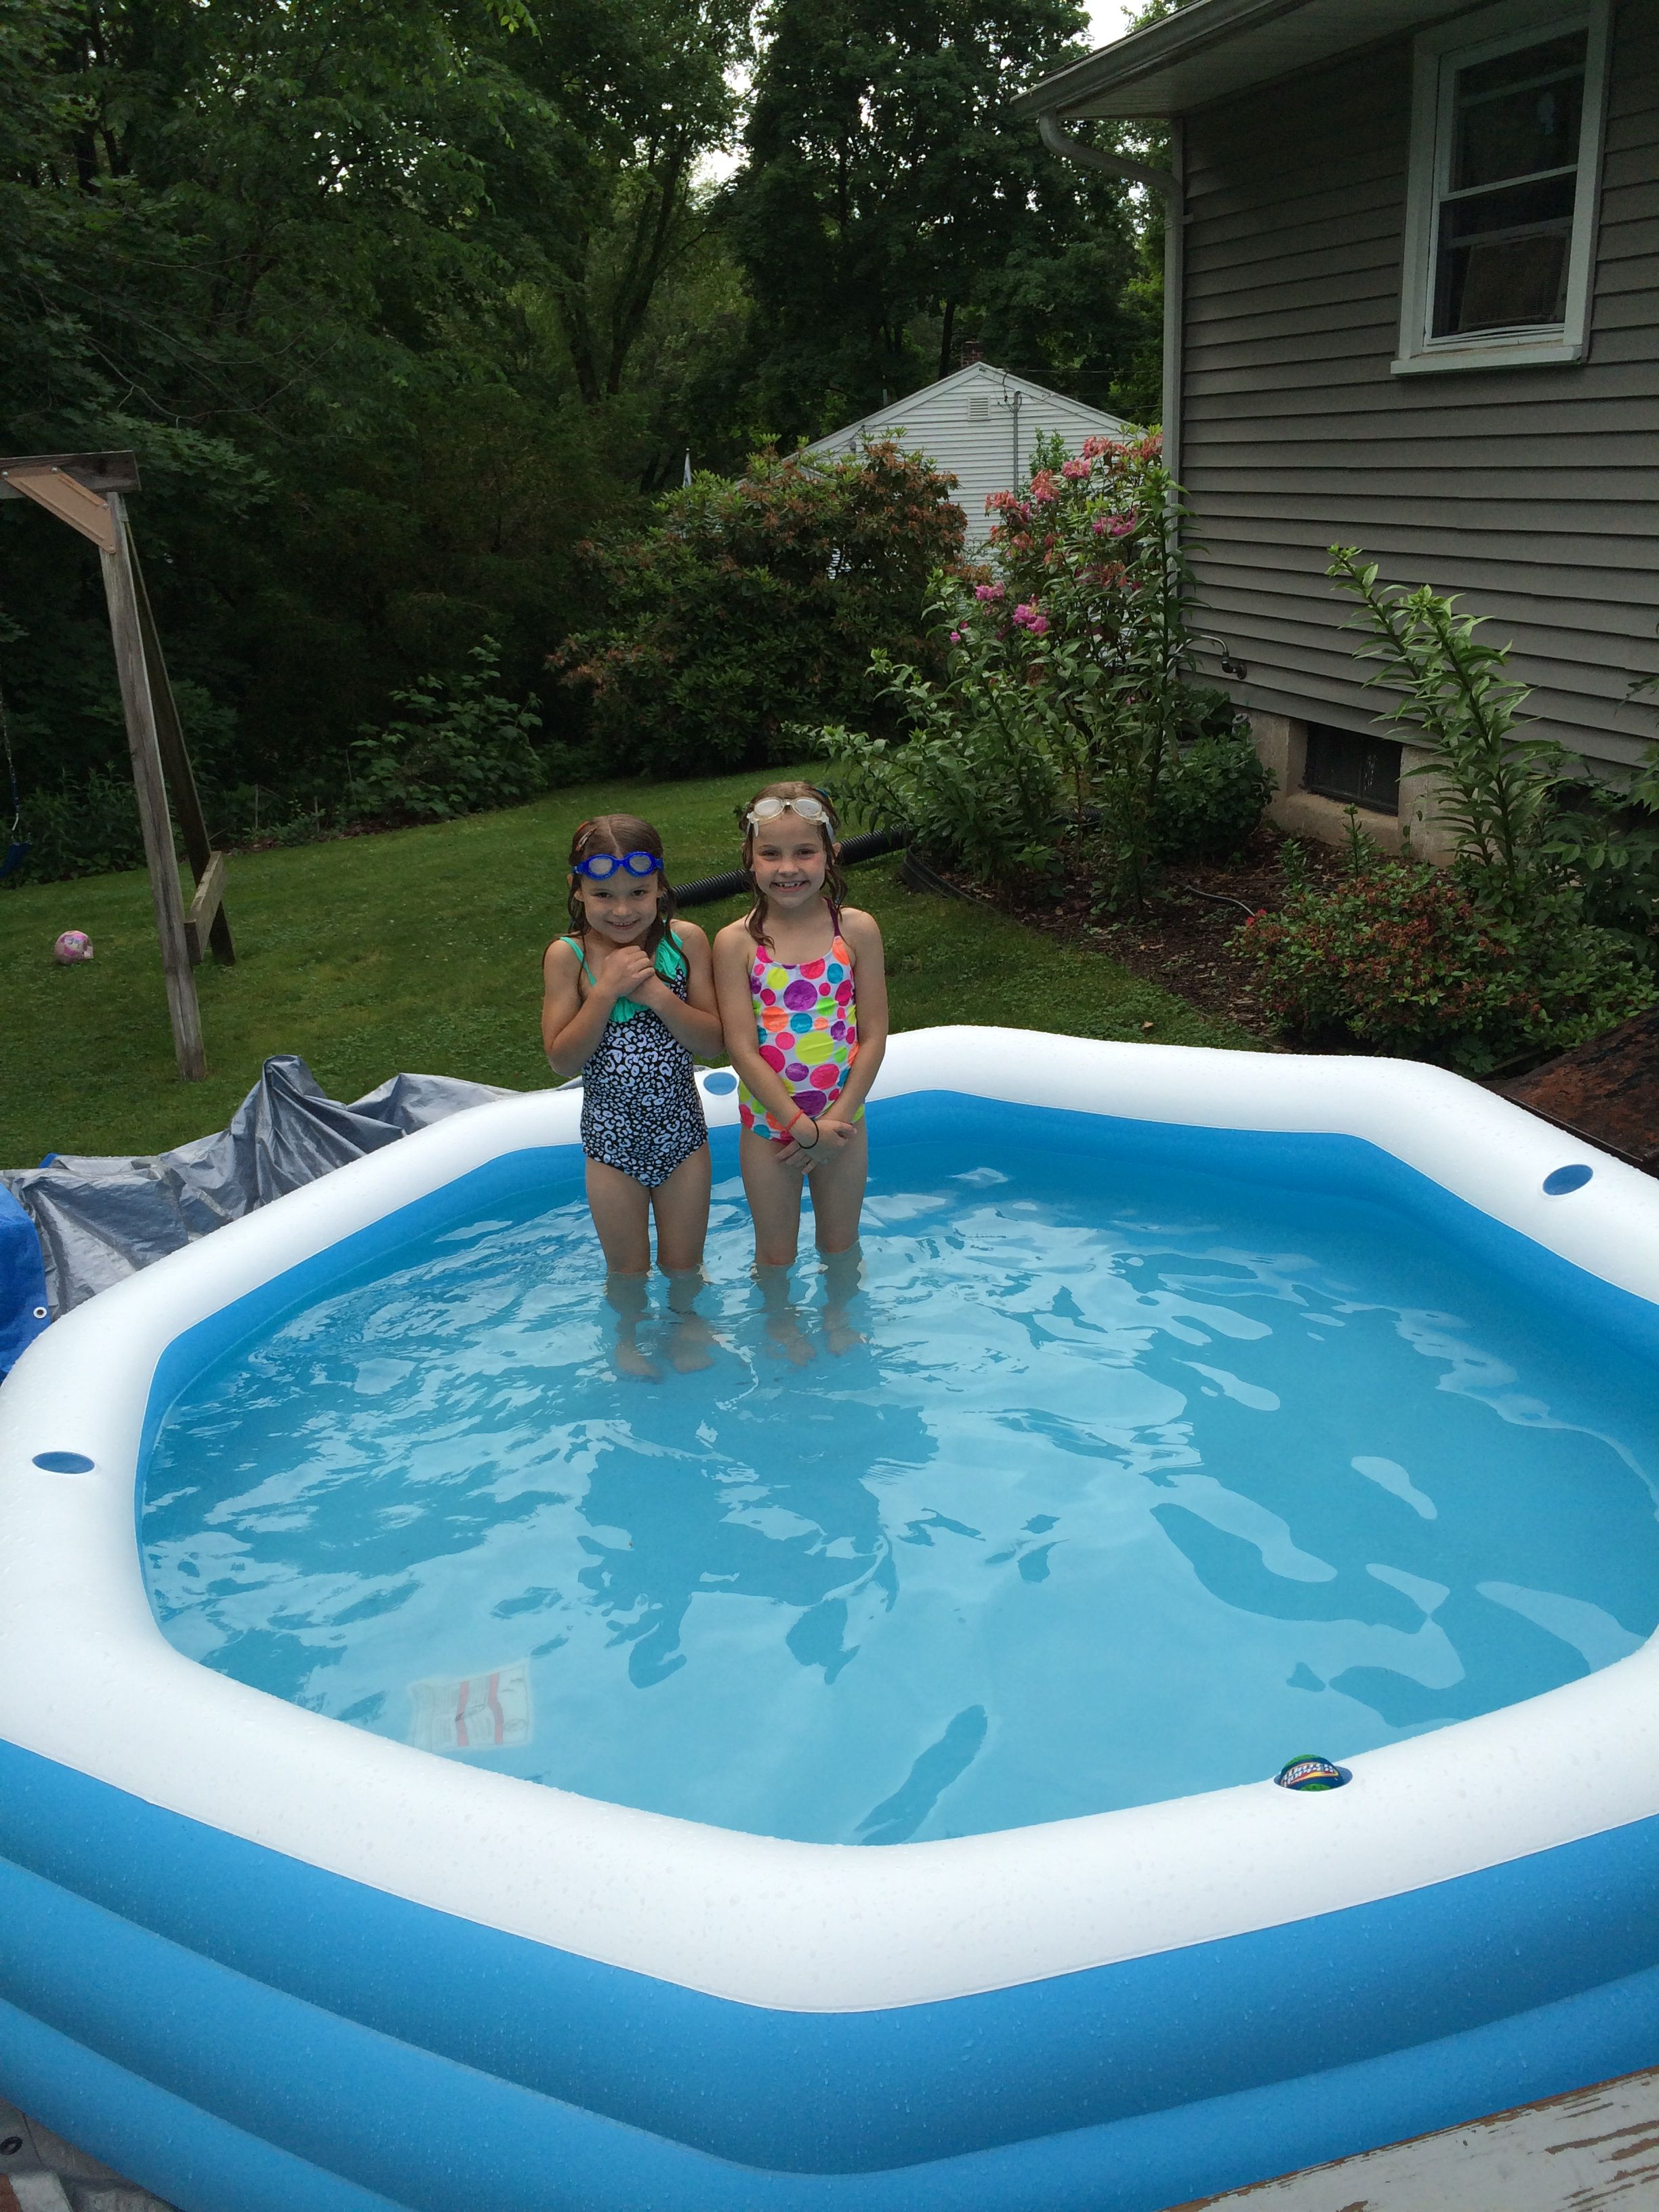 Use A Chlorine Sanitizer In A Kiddie Pool Keeps Pool Clear For Days No More Draining And Filling Every Other Day Kiddie Pool Pool Summertime Fun